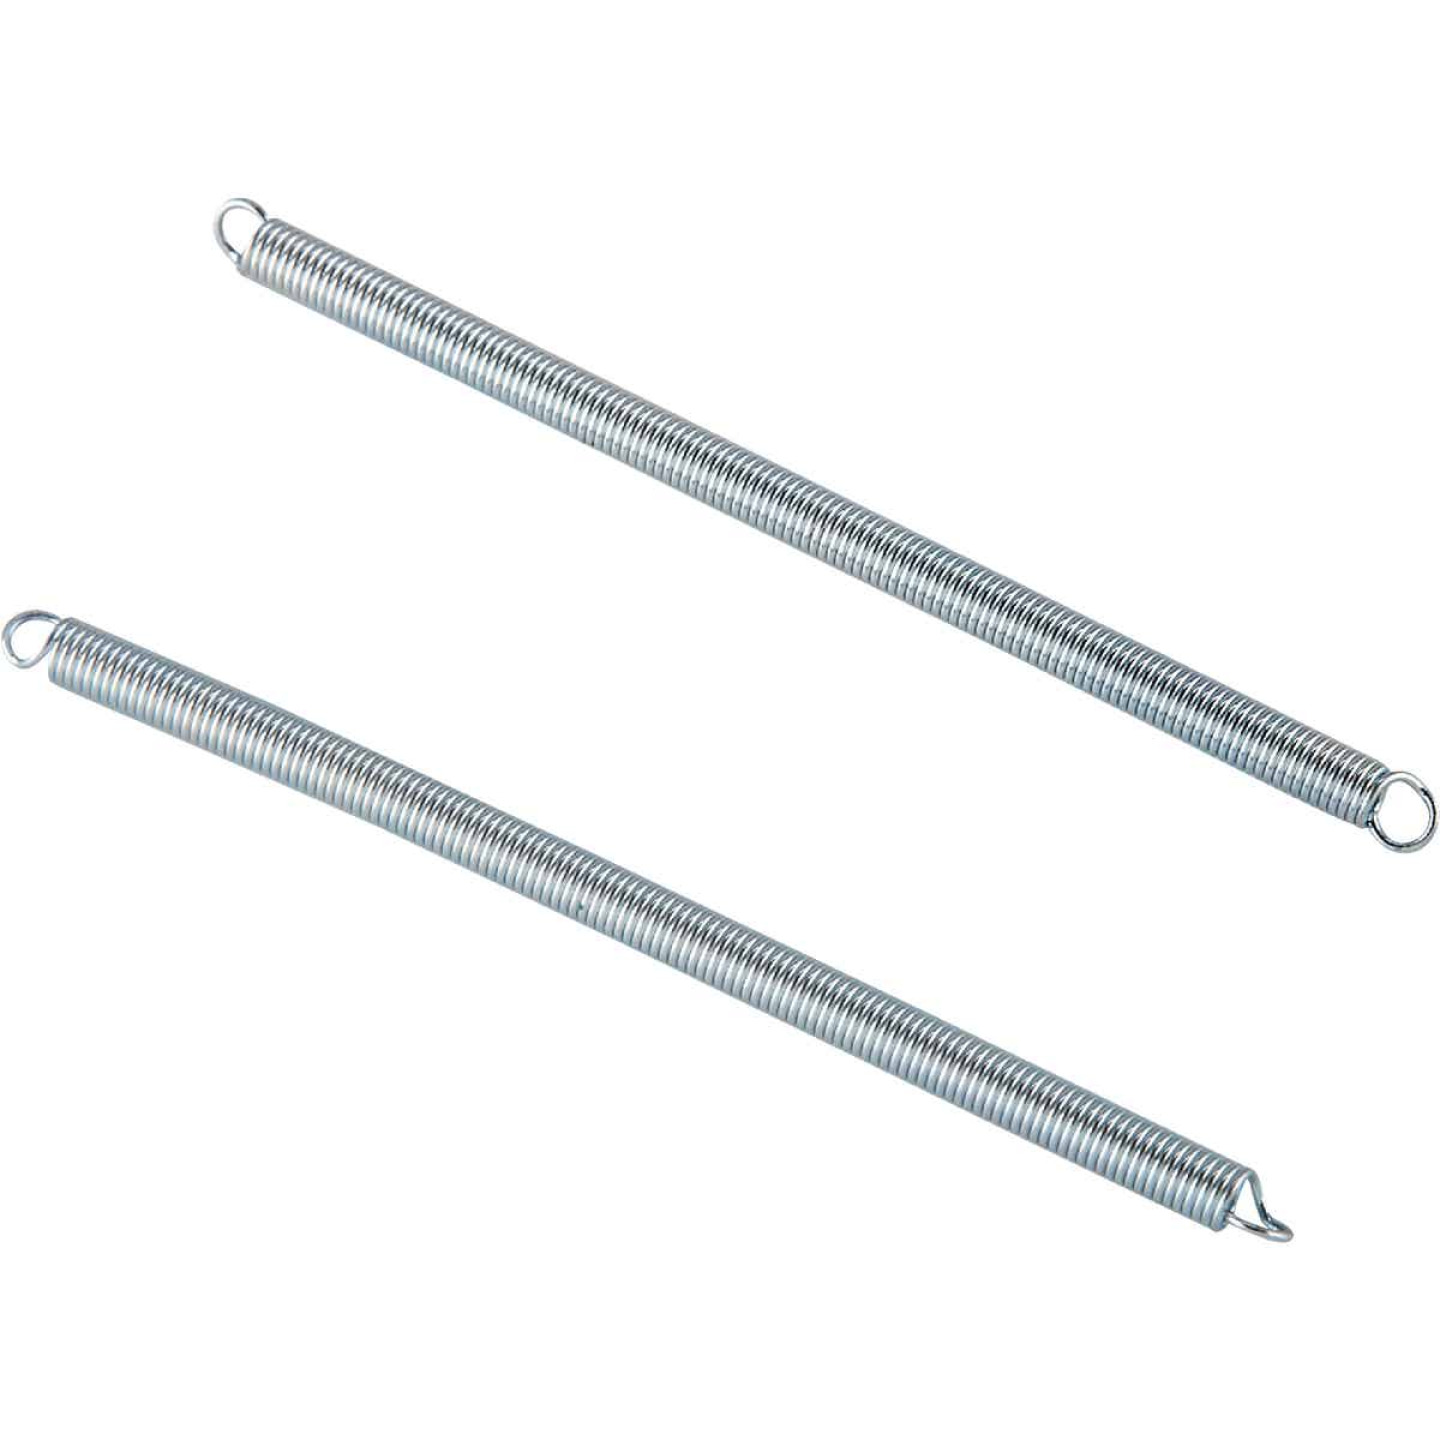 Century Spring 7-1/2 In. x 1-1/8 In. Extension Spring (1 Count) Image 1